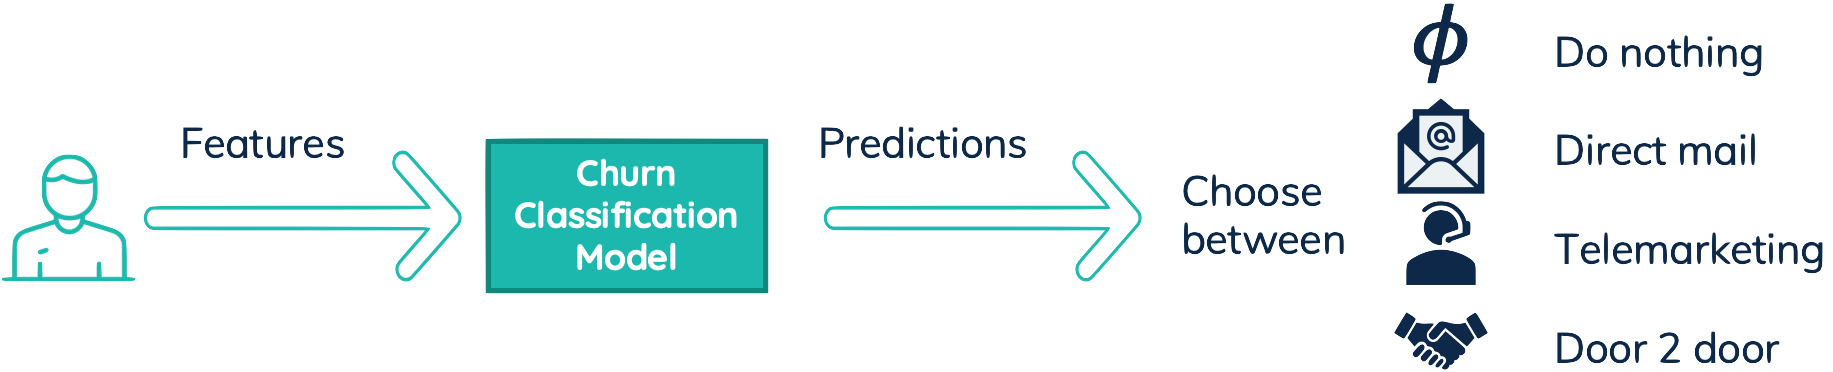 Features of user, are transformed by churn classification model in churn predictions, for each campaign.